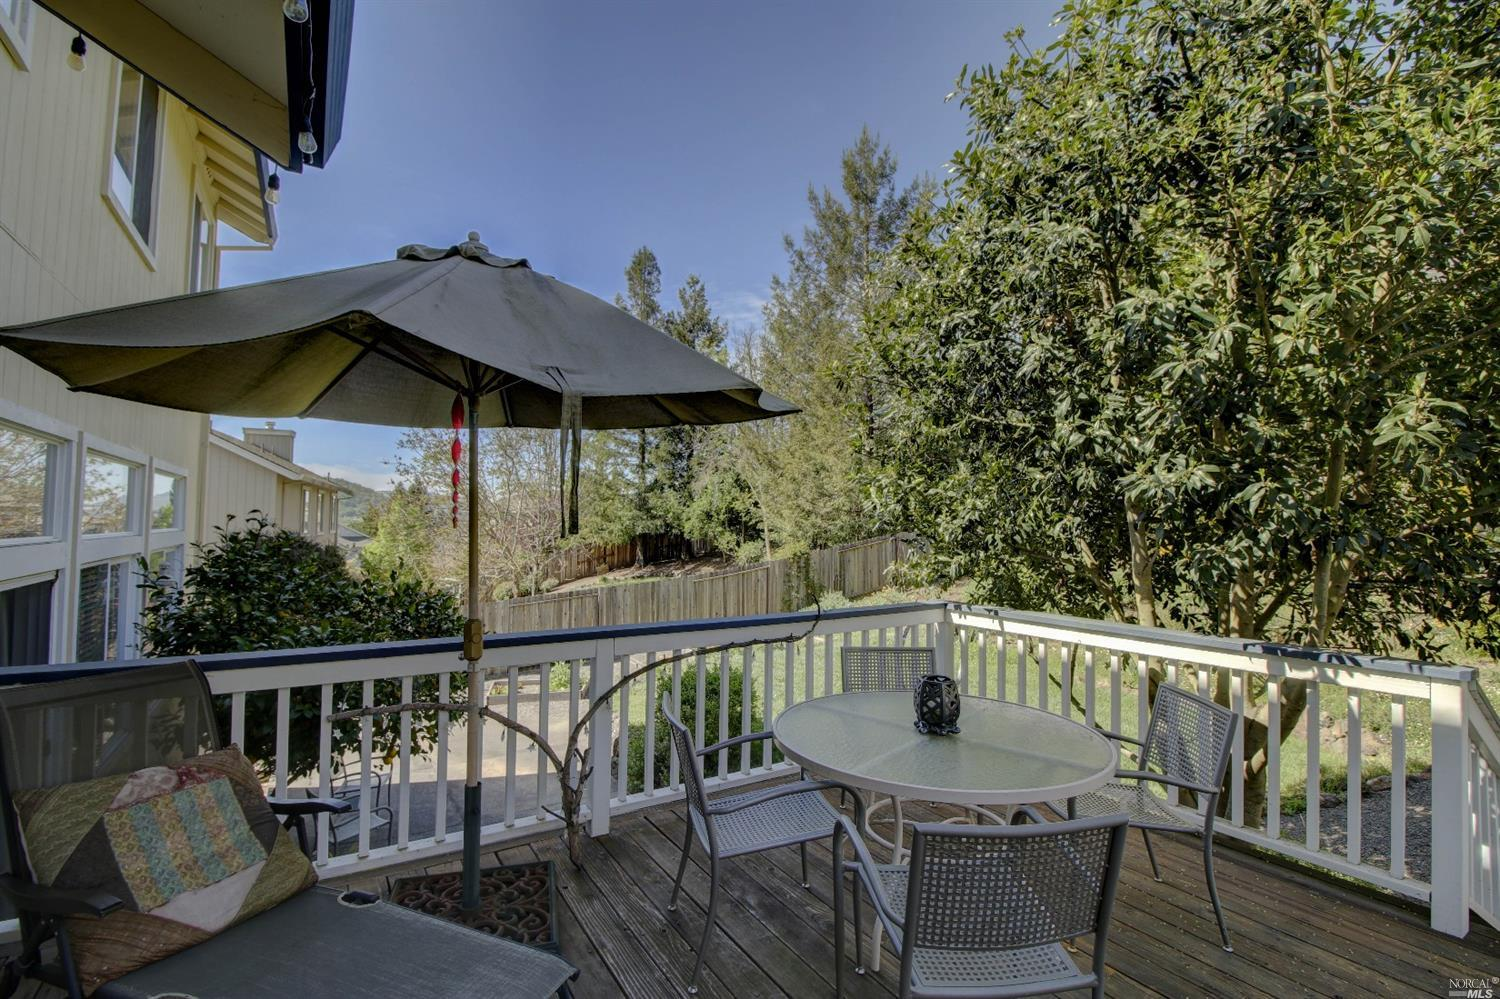 1533 Great Heron drive Santa Rosa, CA 95409 - MLS #: 21711826